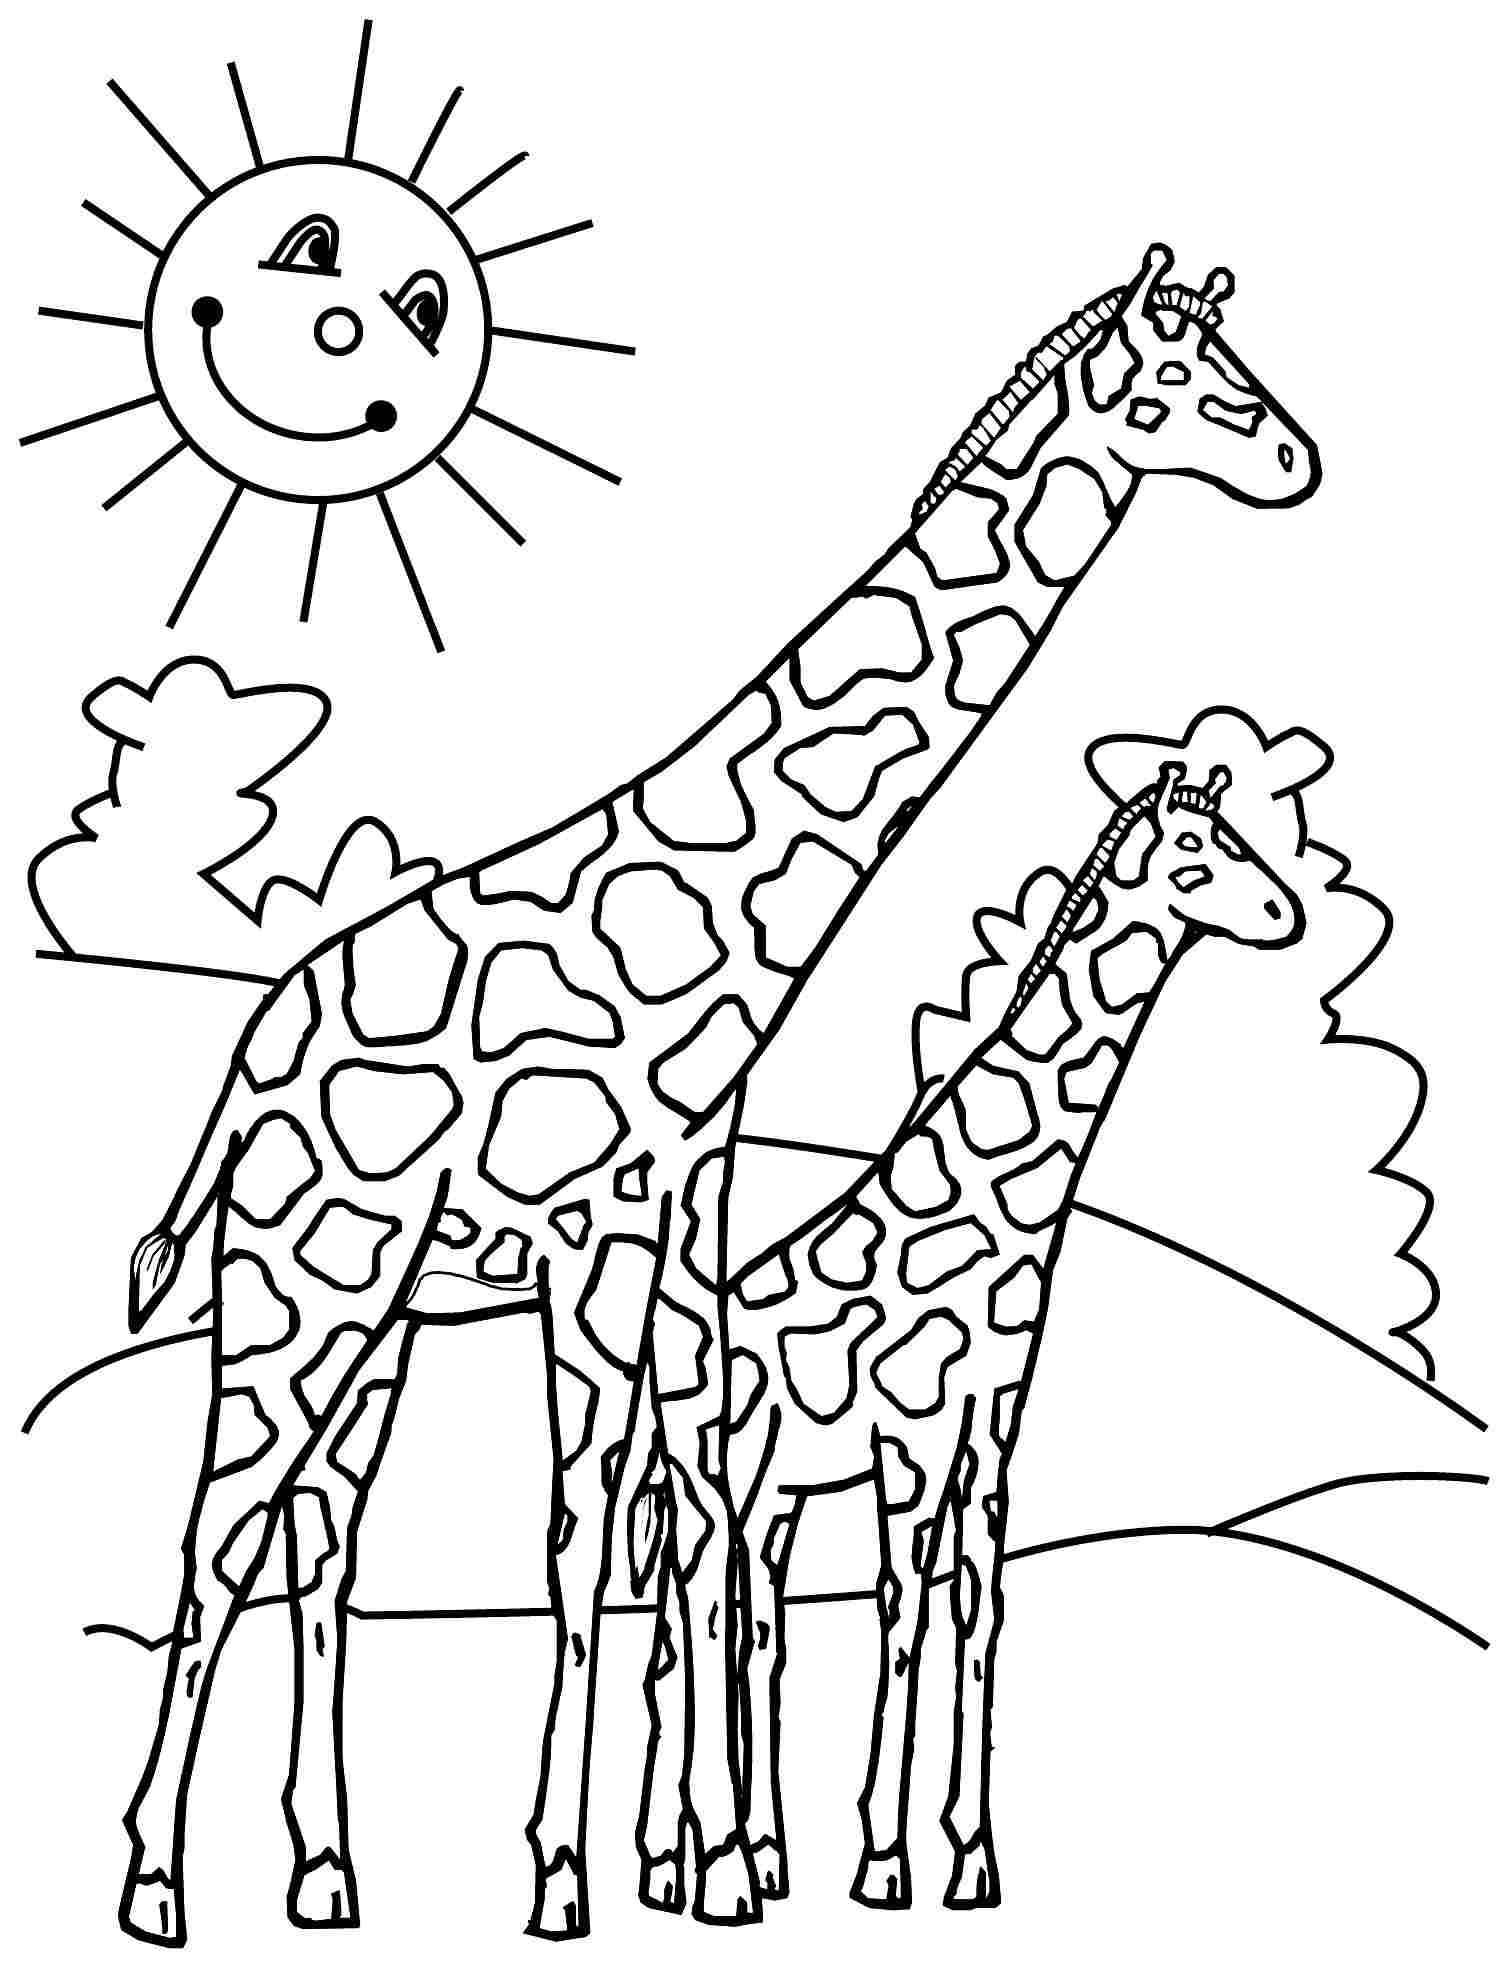 1496x1968 Giraffe Coloring Pages Coloringsuite Gallery